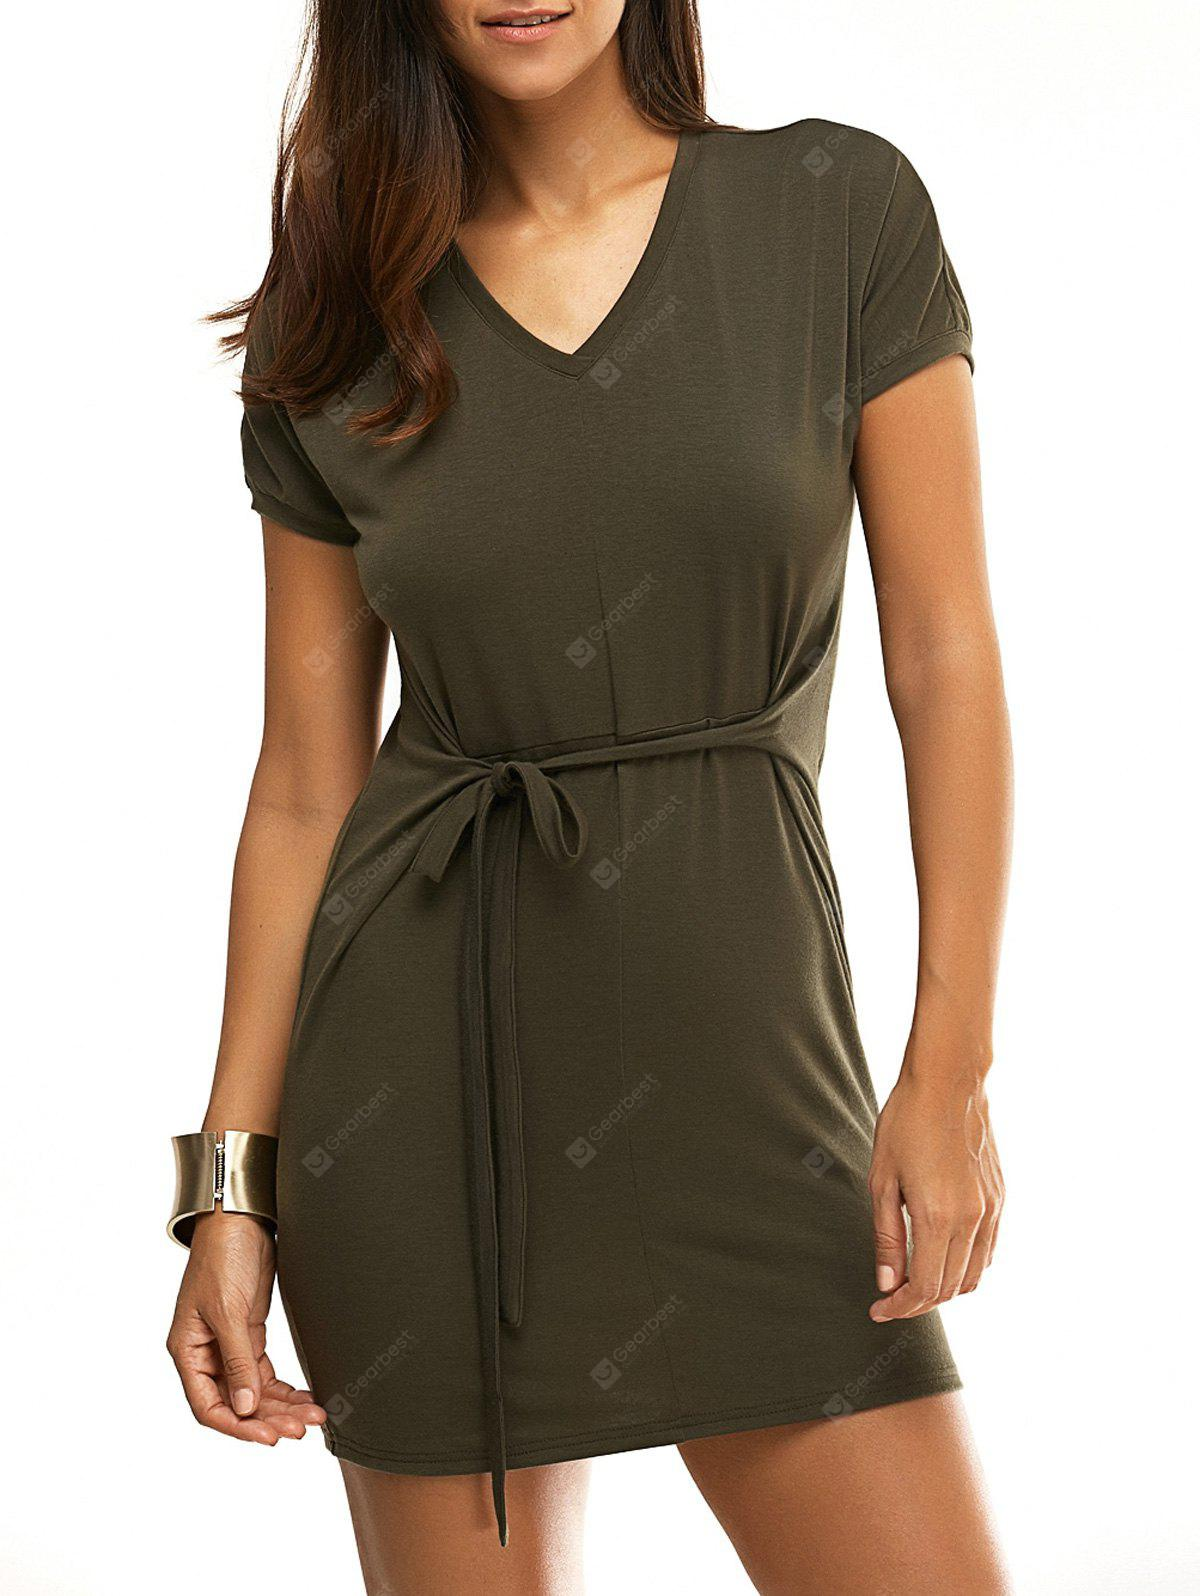 V-Neck Short Sleeve T Shirt Dress